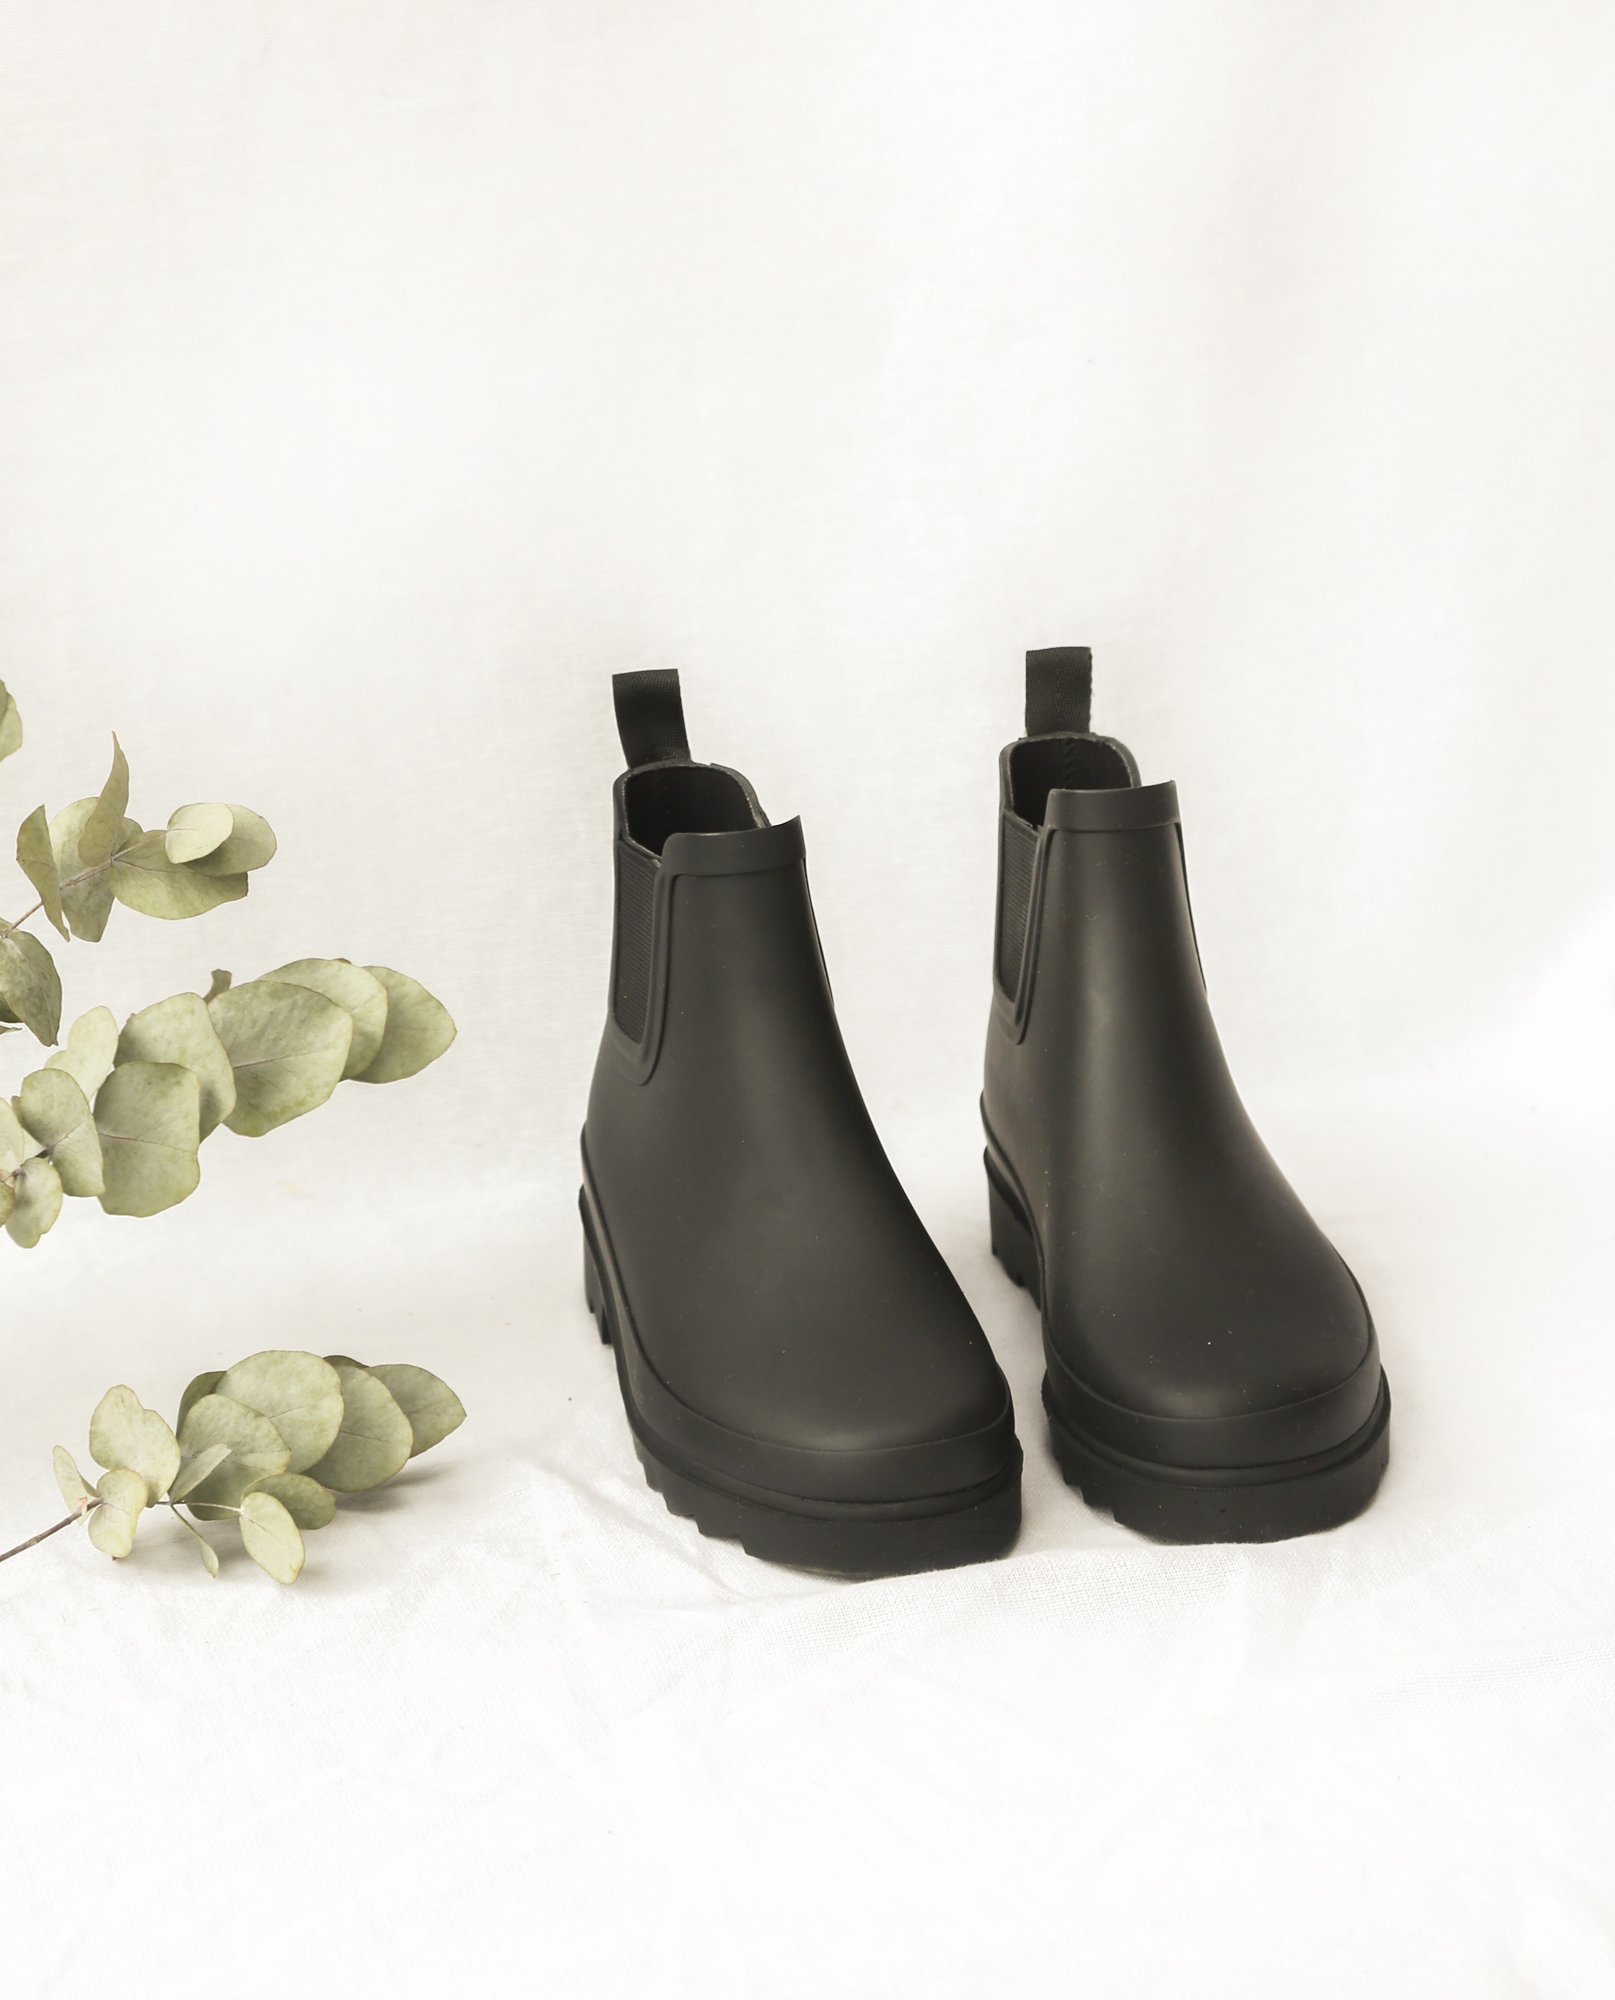 BROOKE Welly Boots In Black from Beaumont Organic